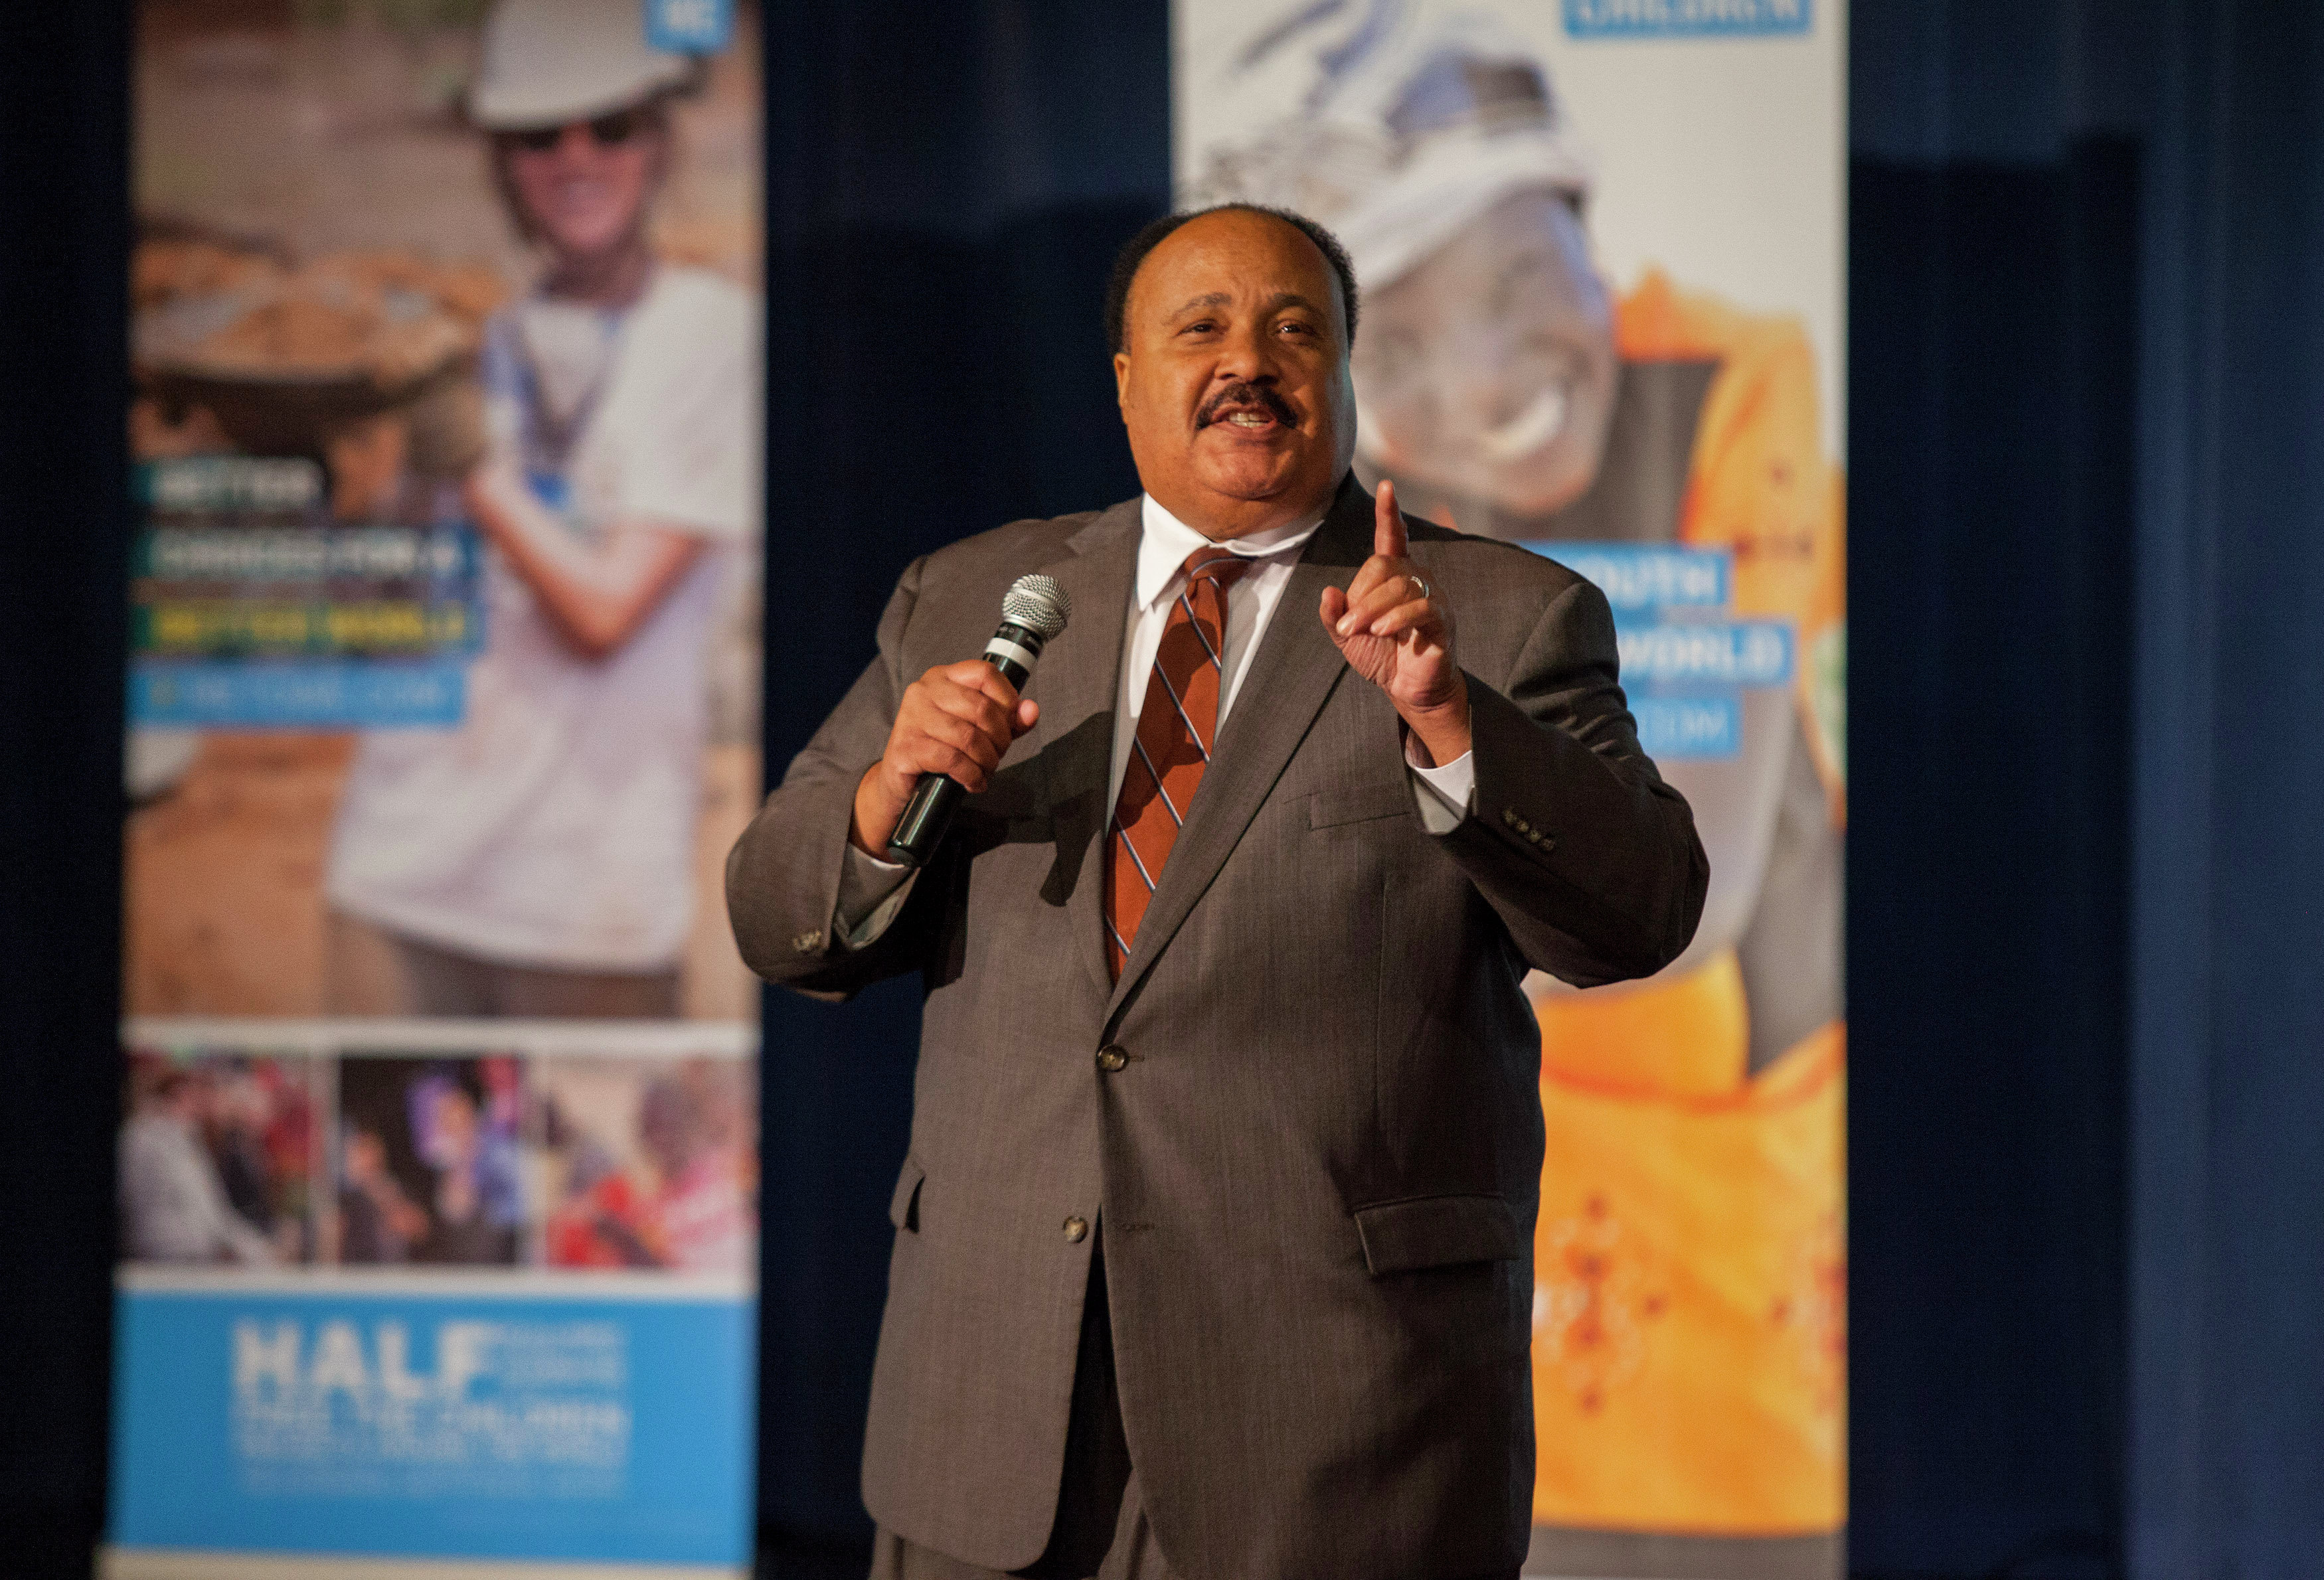 Martin Luther King III, the oldest son, like his father and siblings is a civil rights activist